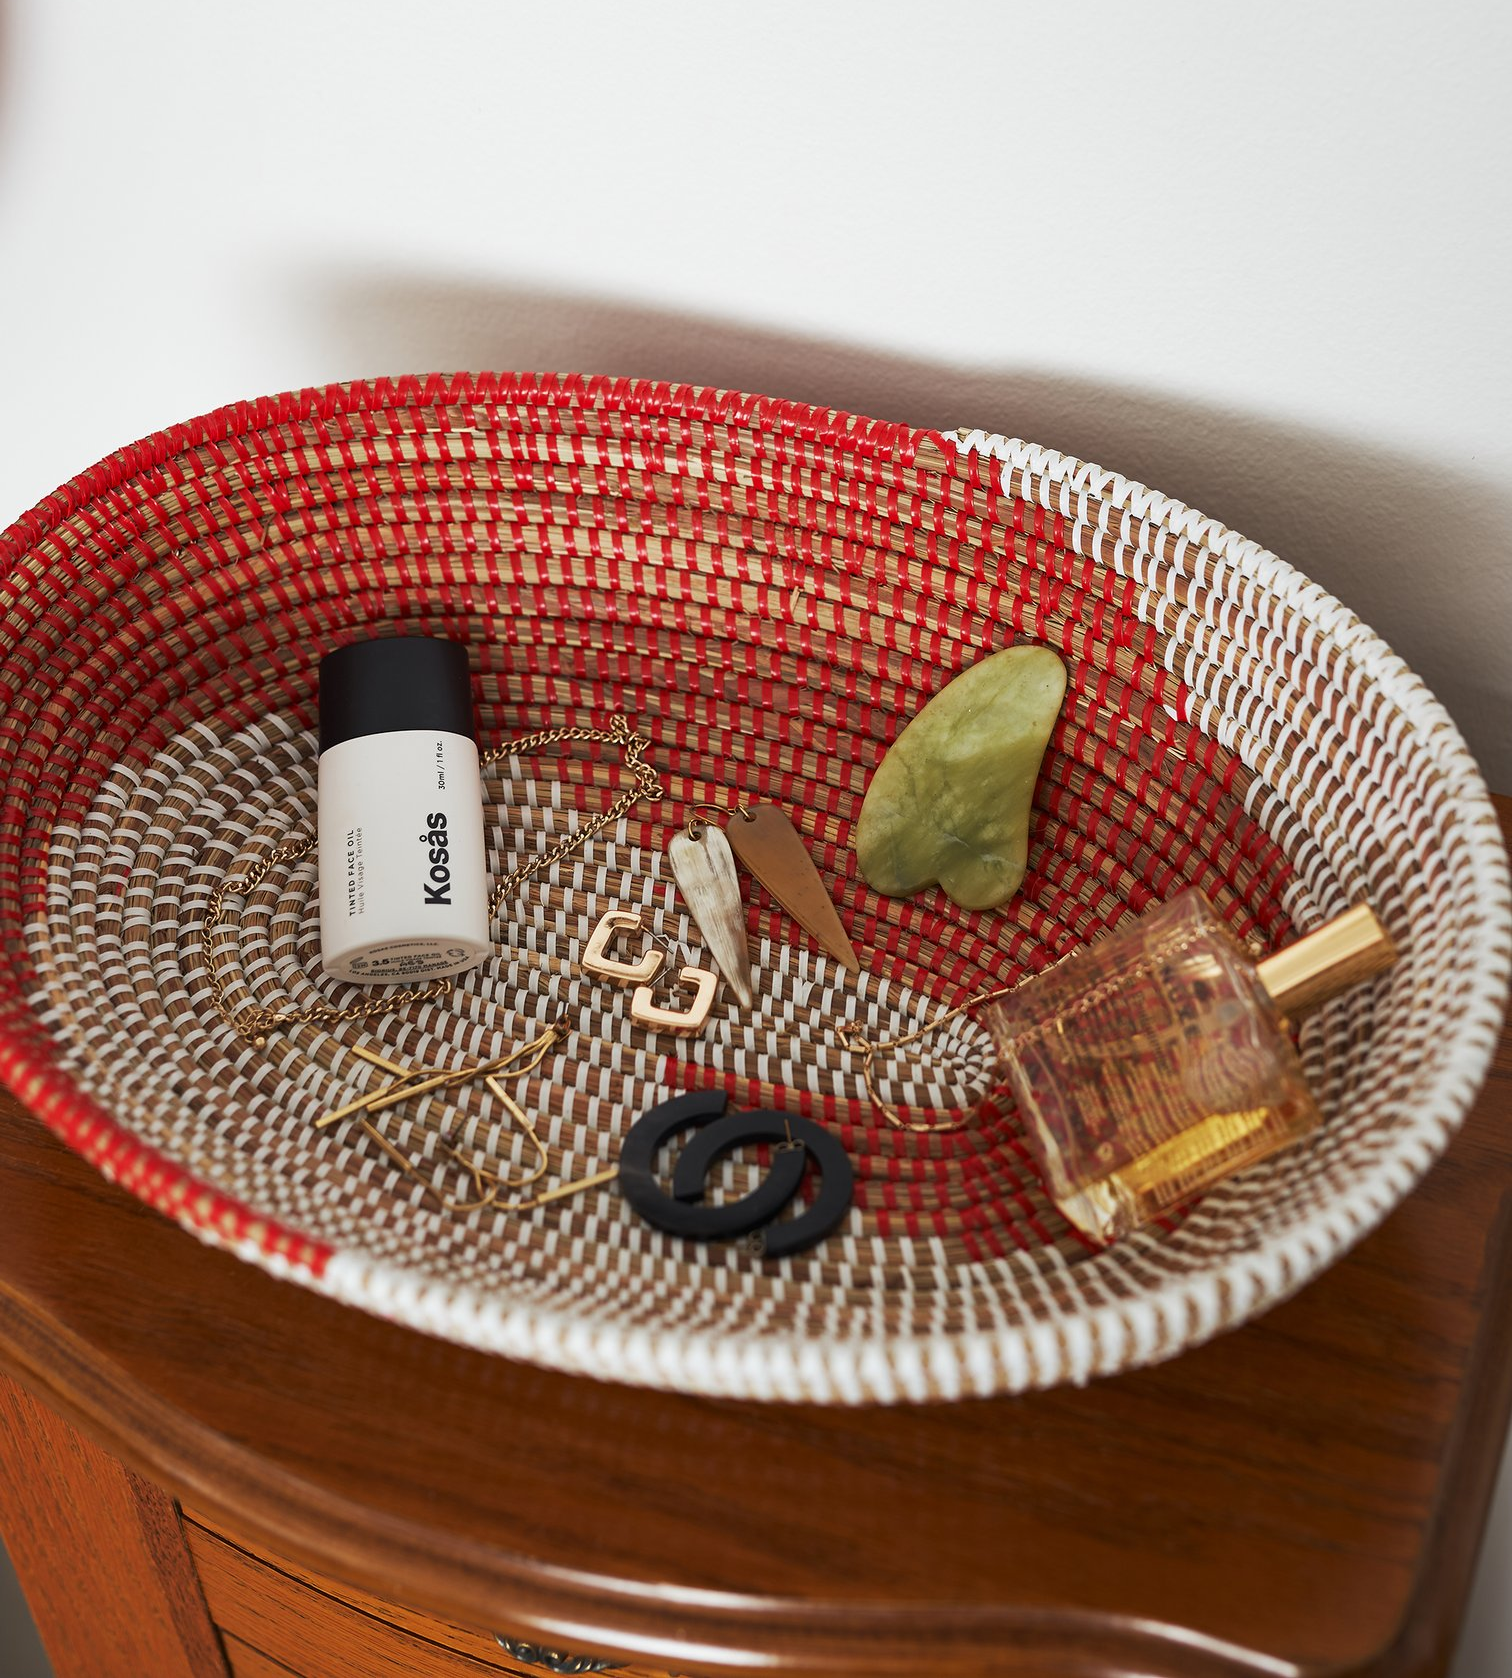 The oval red and white woven bowl with jewelry, a gua sha, perfume, and a cosmetics bottle in it